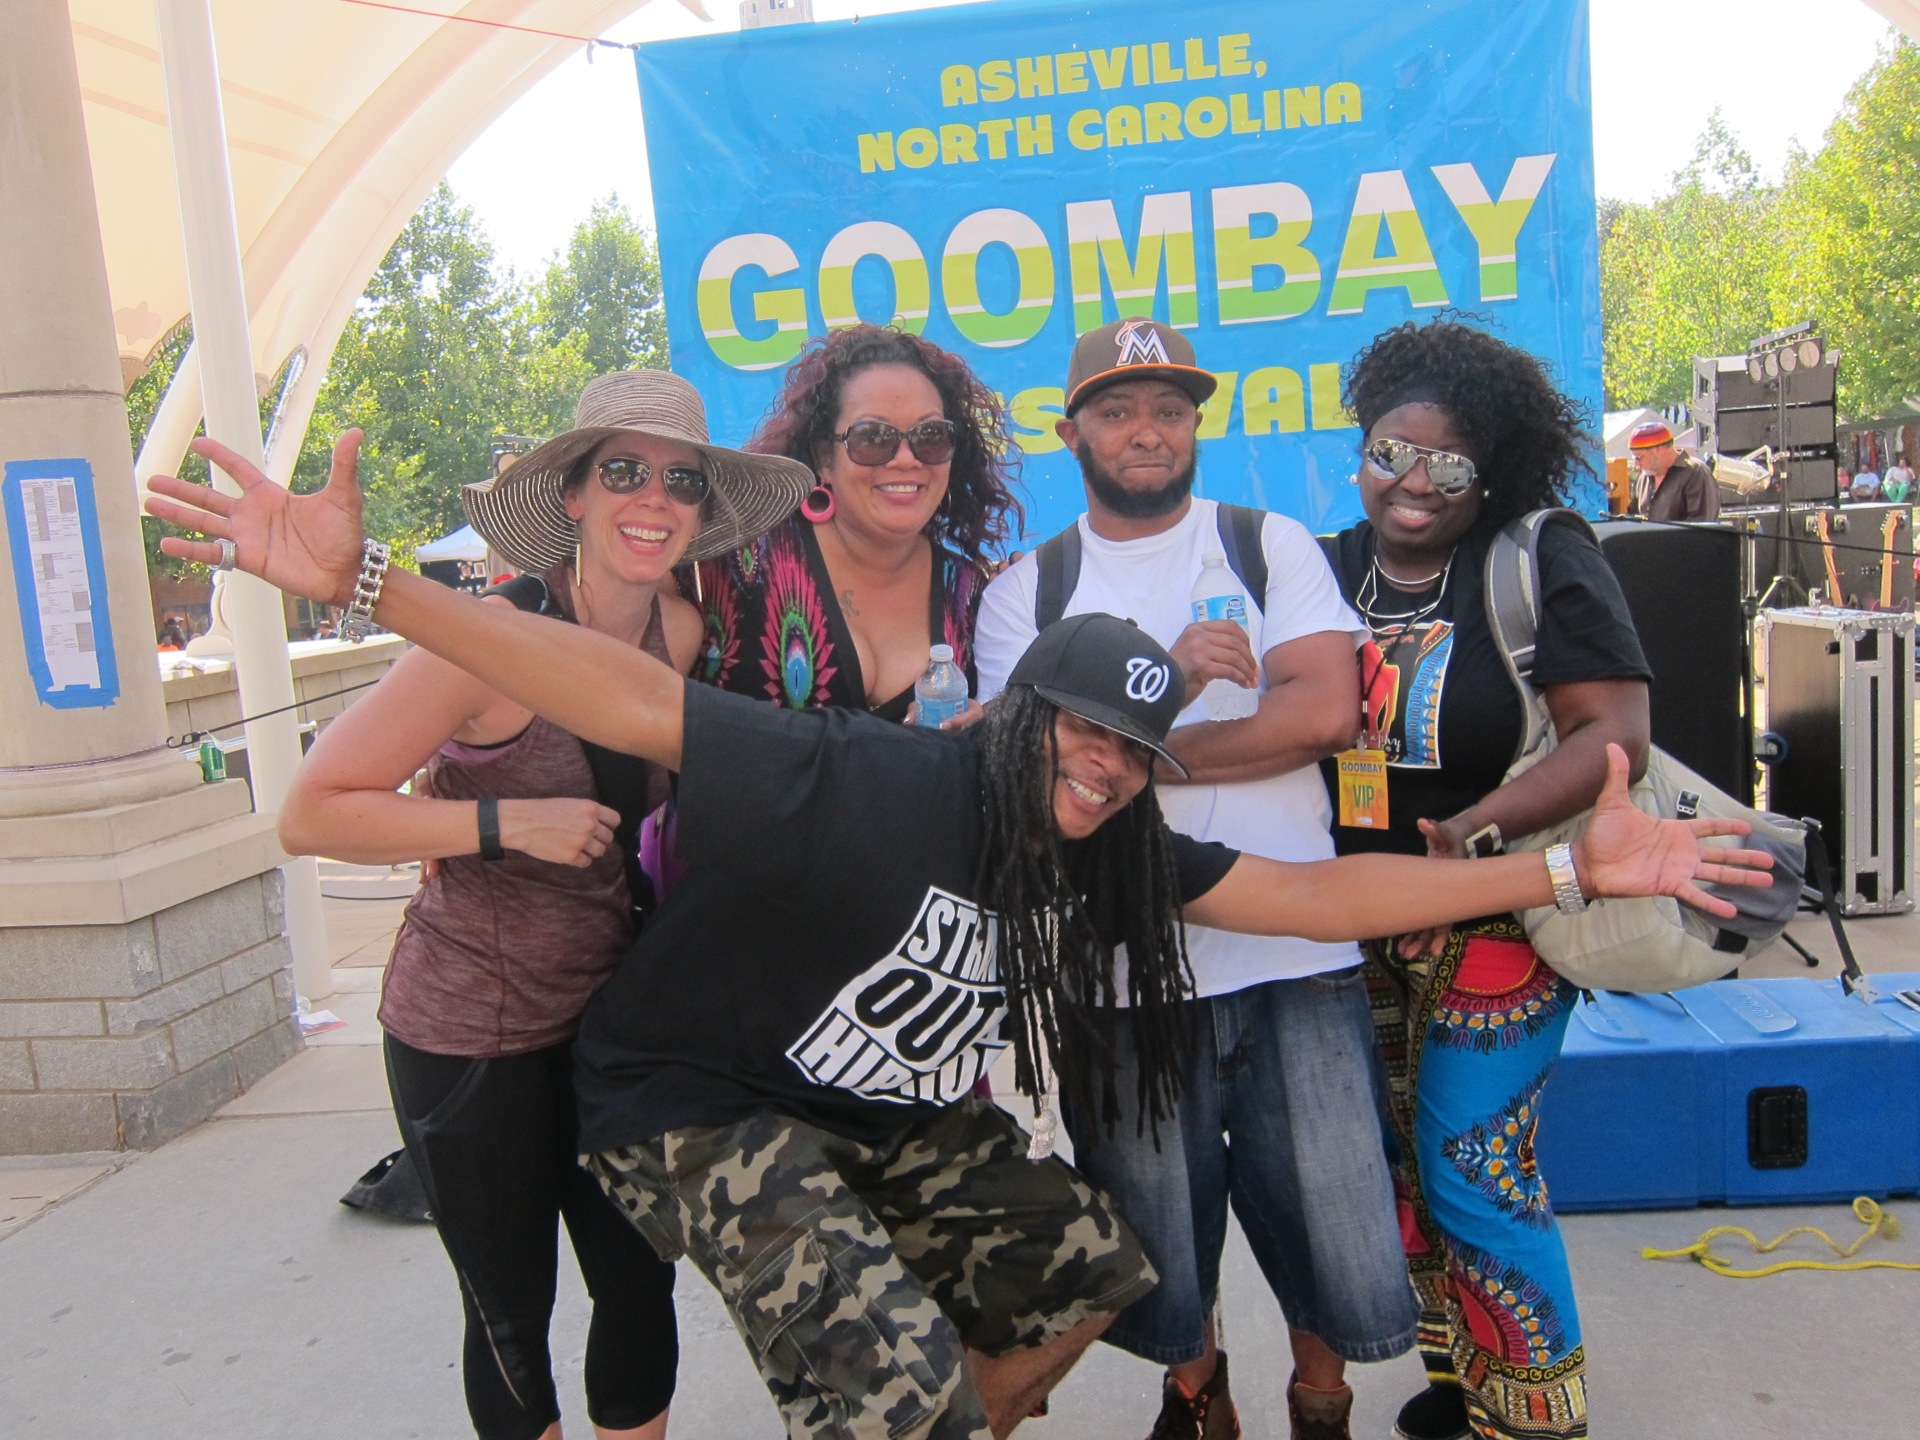 Goombay Festival highlights multiculturalism in Asheville